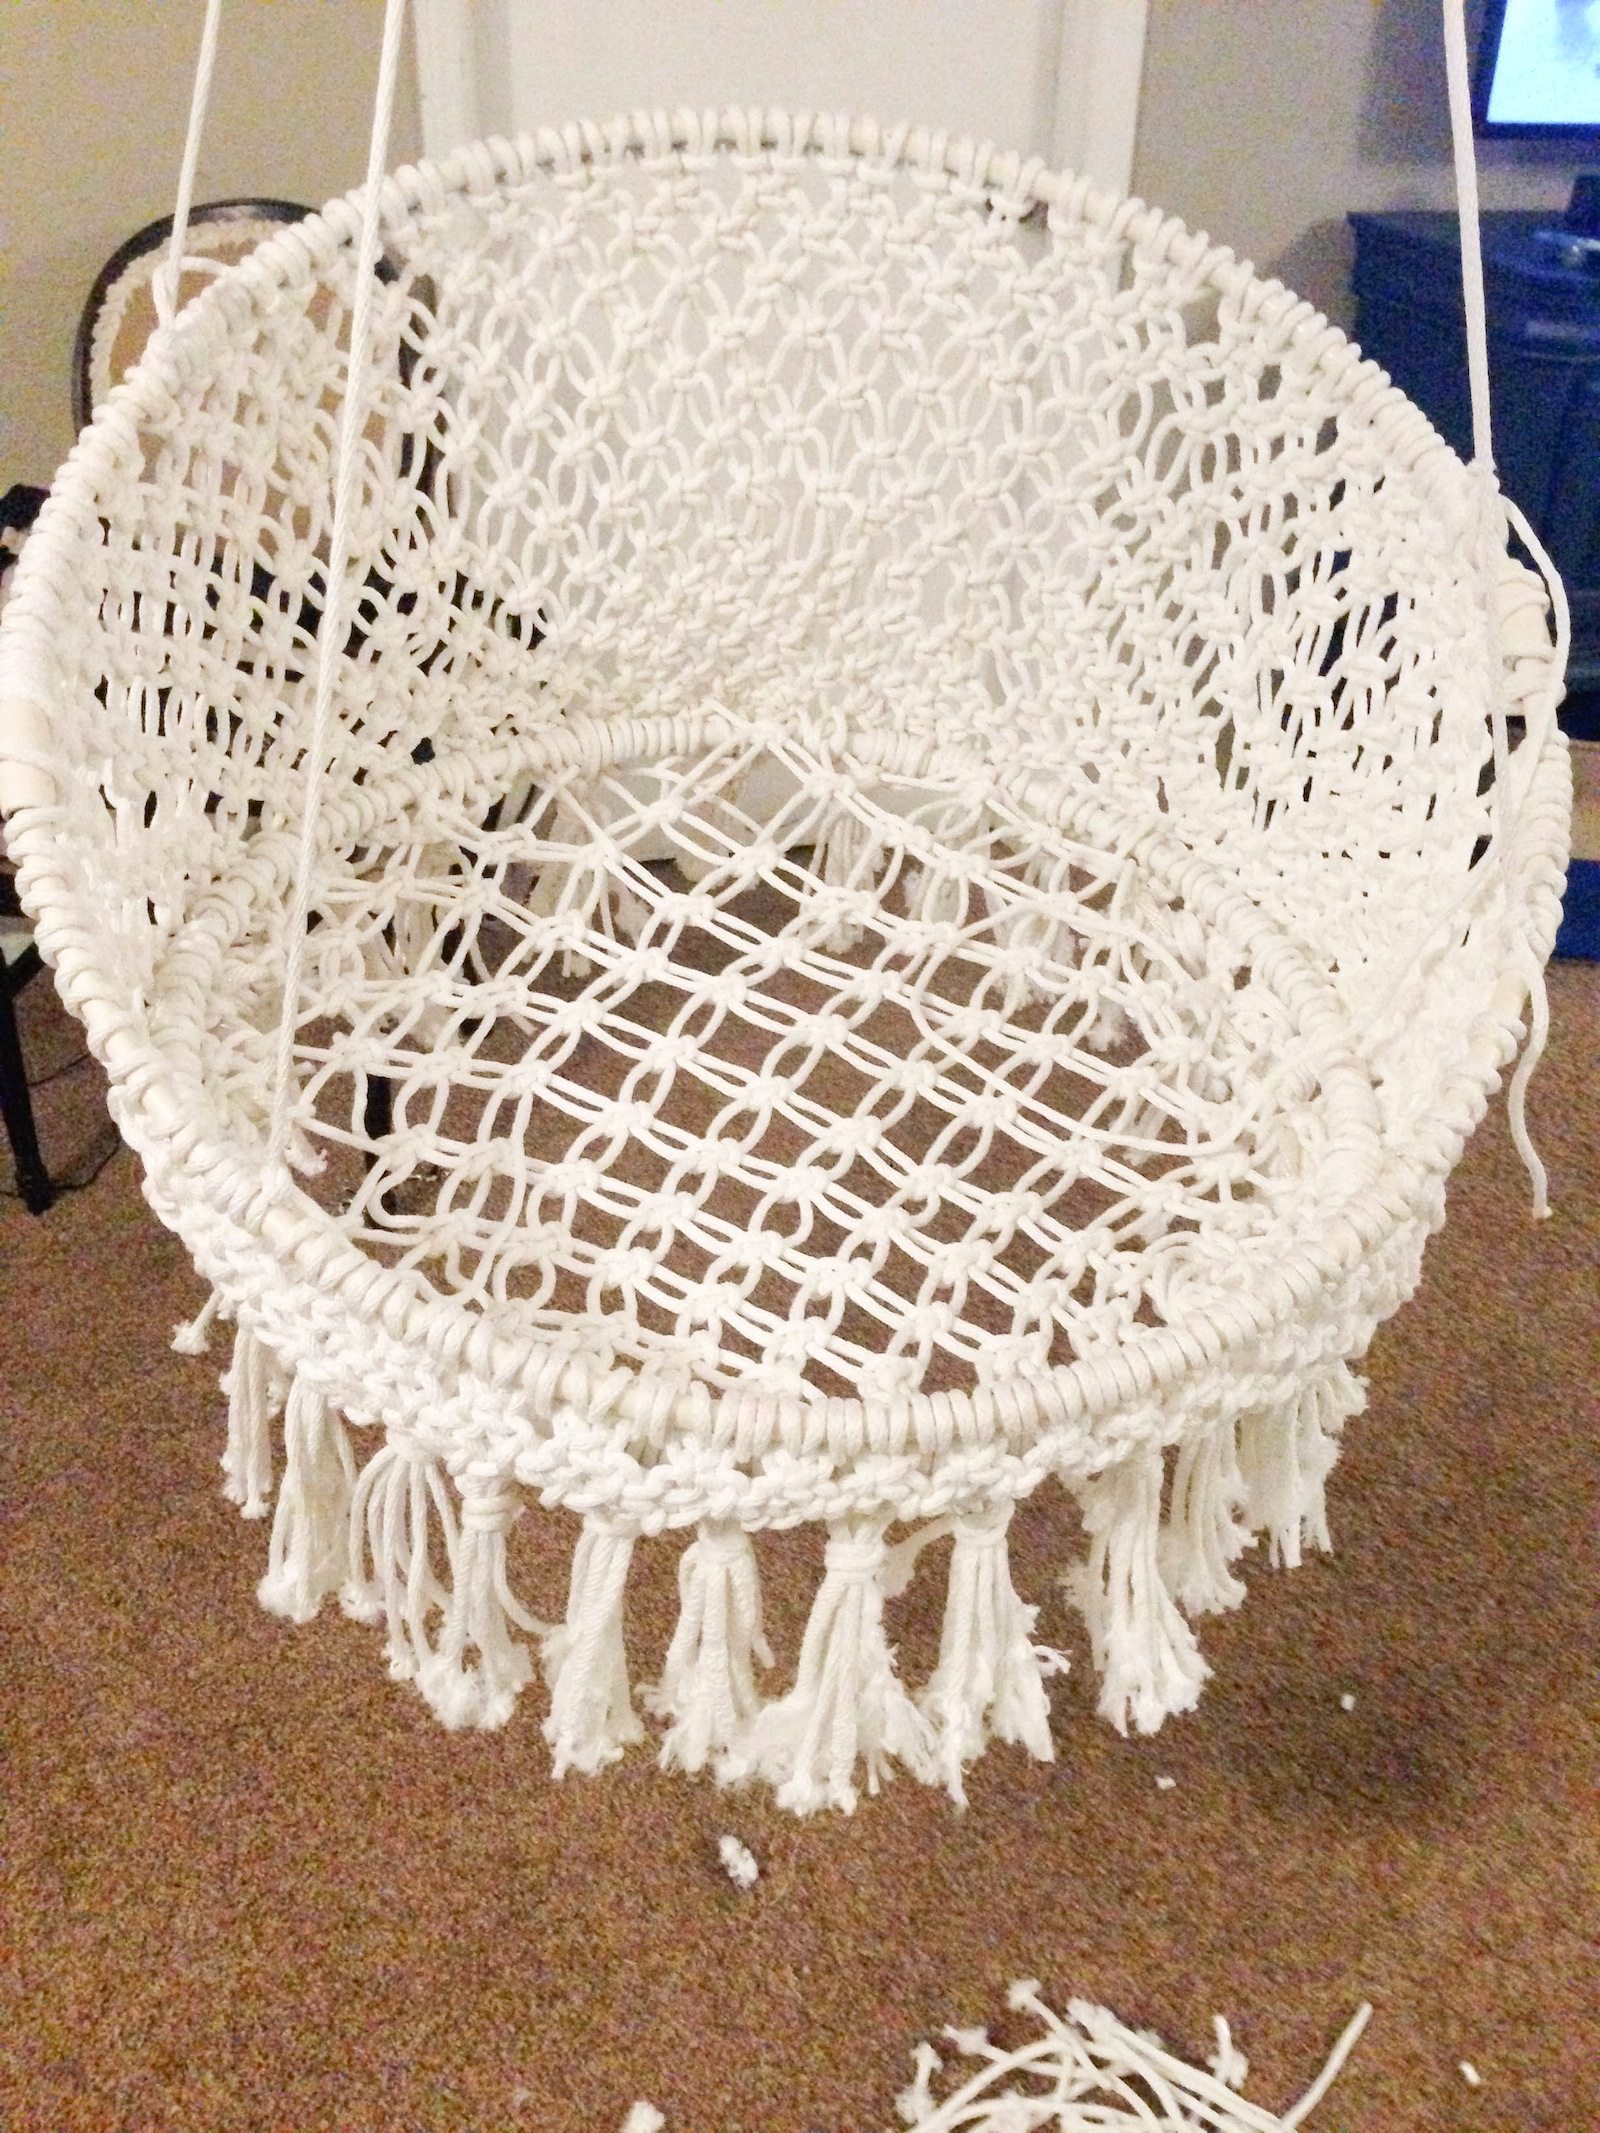 Macrame Hanging Chair and other amazing macrame tutorials!